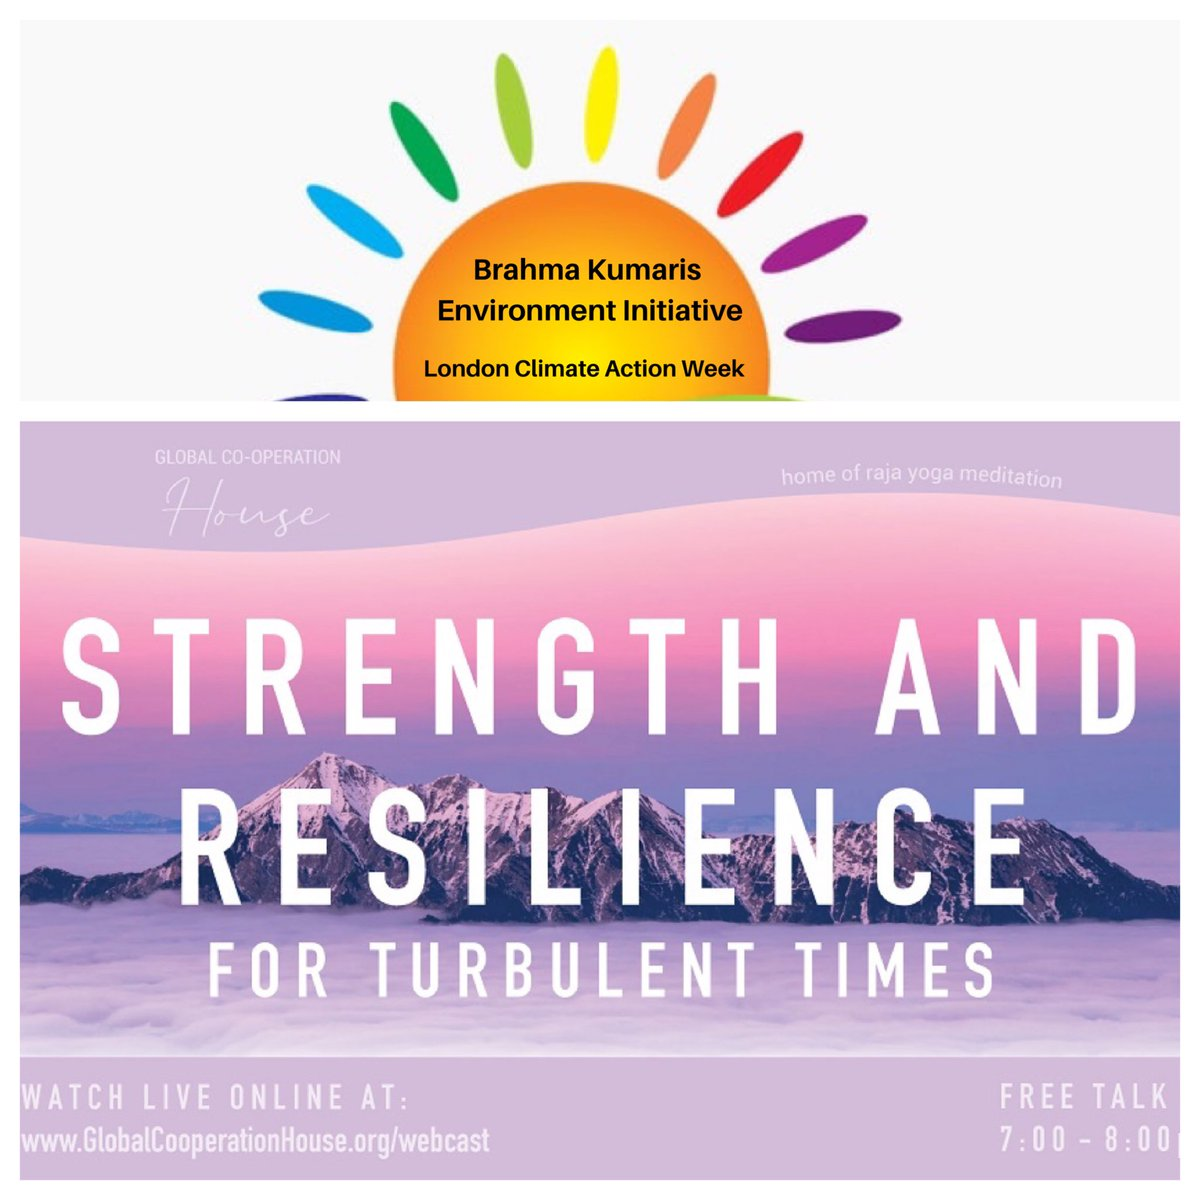 Strength & Resilience for Turbulent Times: Thurs #2June 7-8pm: https://t.co/ujoU80rrE5 - Dedicated2 #London #ClimateAction Week @london_climate. Join #SonjaOhlson & #GoloPilz of @EcoBrahmaKumari 2explore how2 adapt our thoughts & lifestyles during Times like NOW! #meditation🧘🏽 https://t.co/pxCNhLyoey